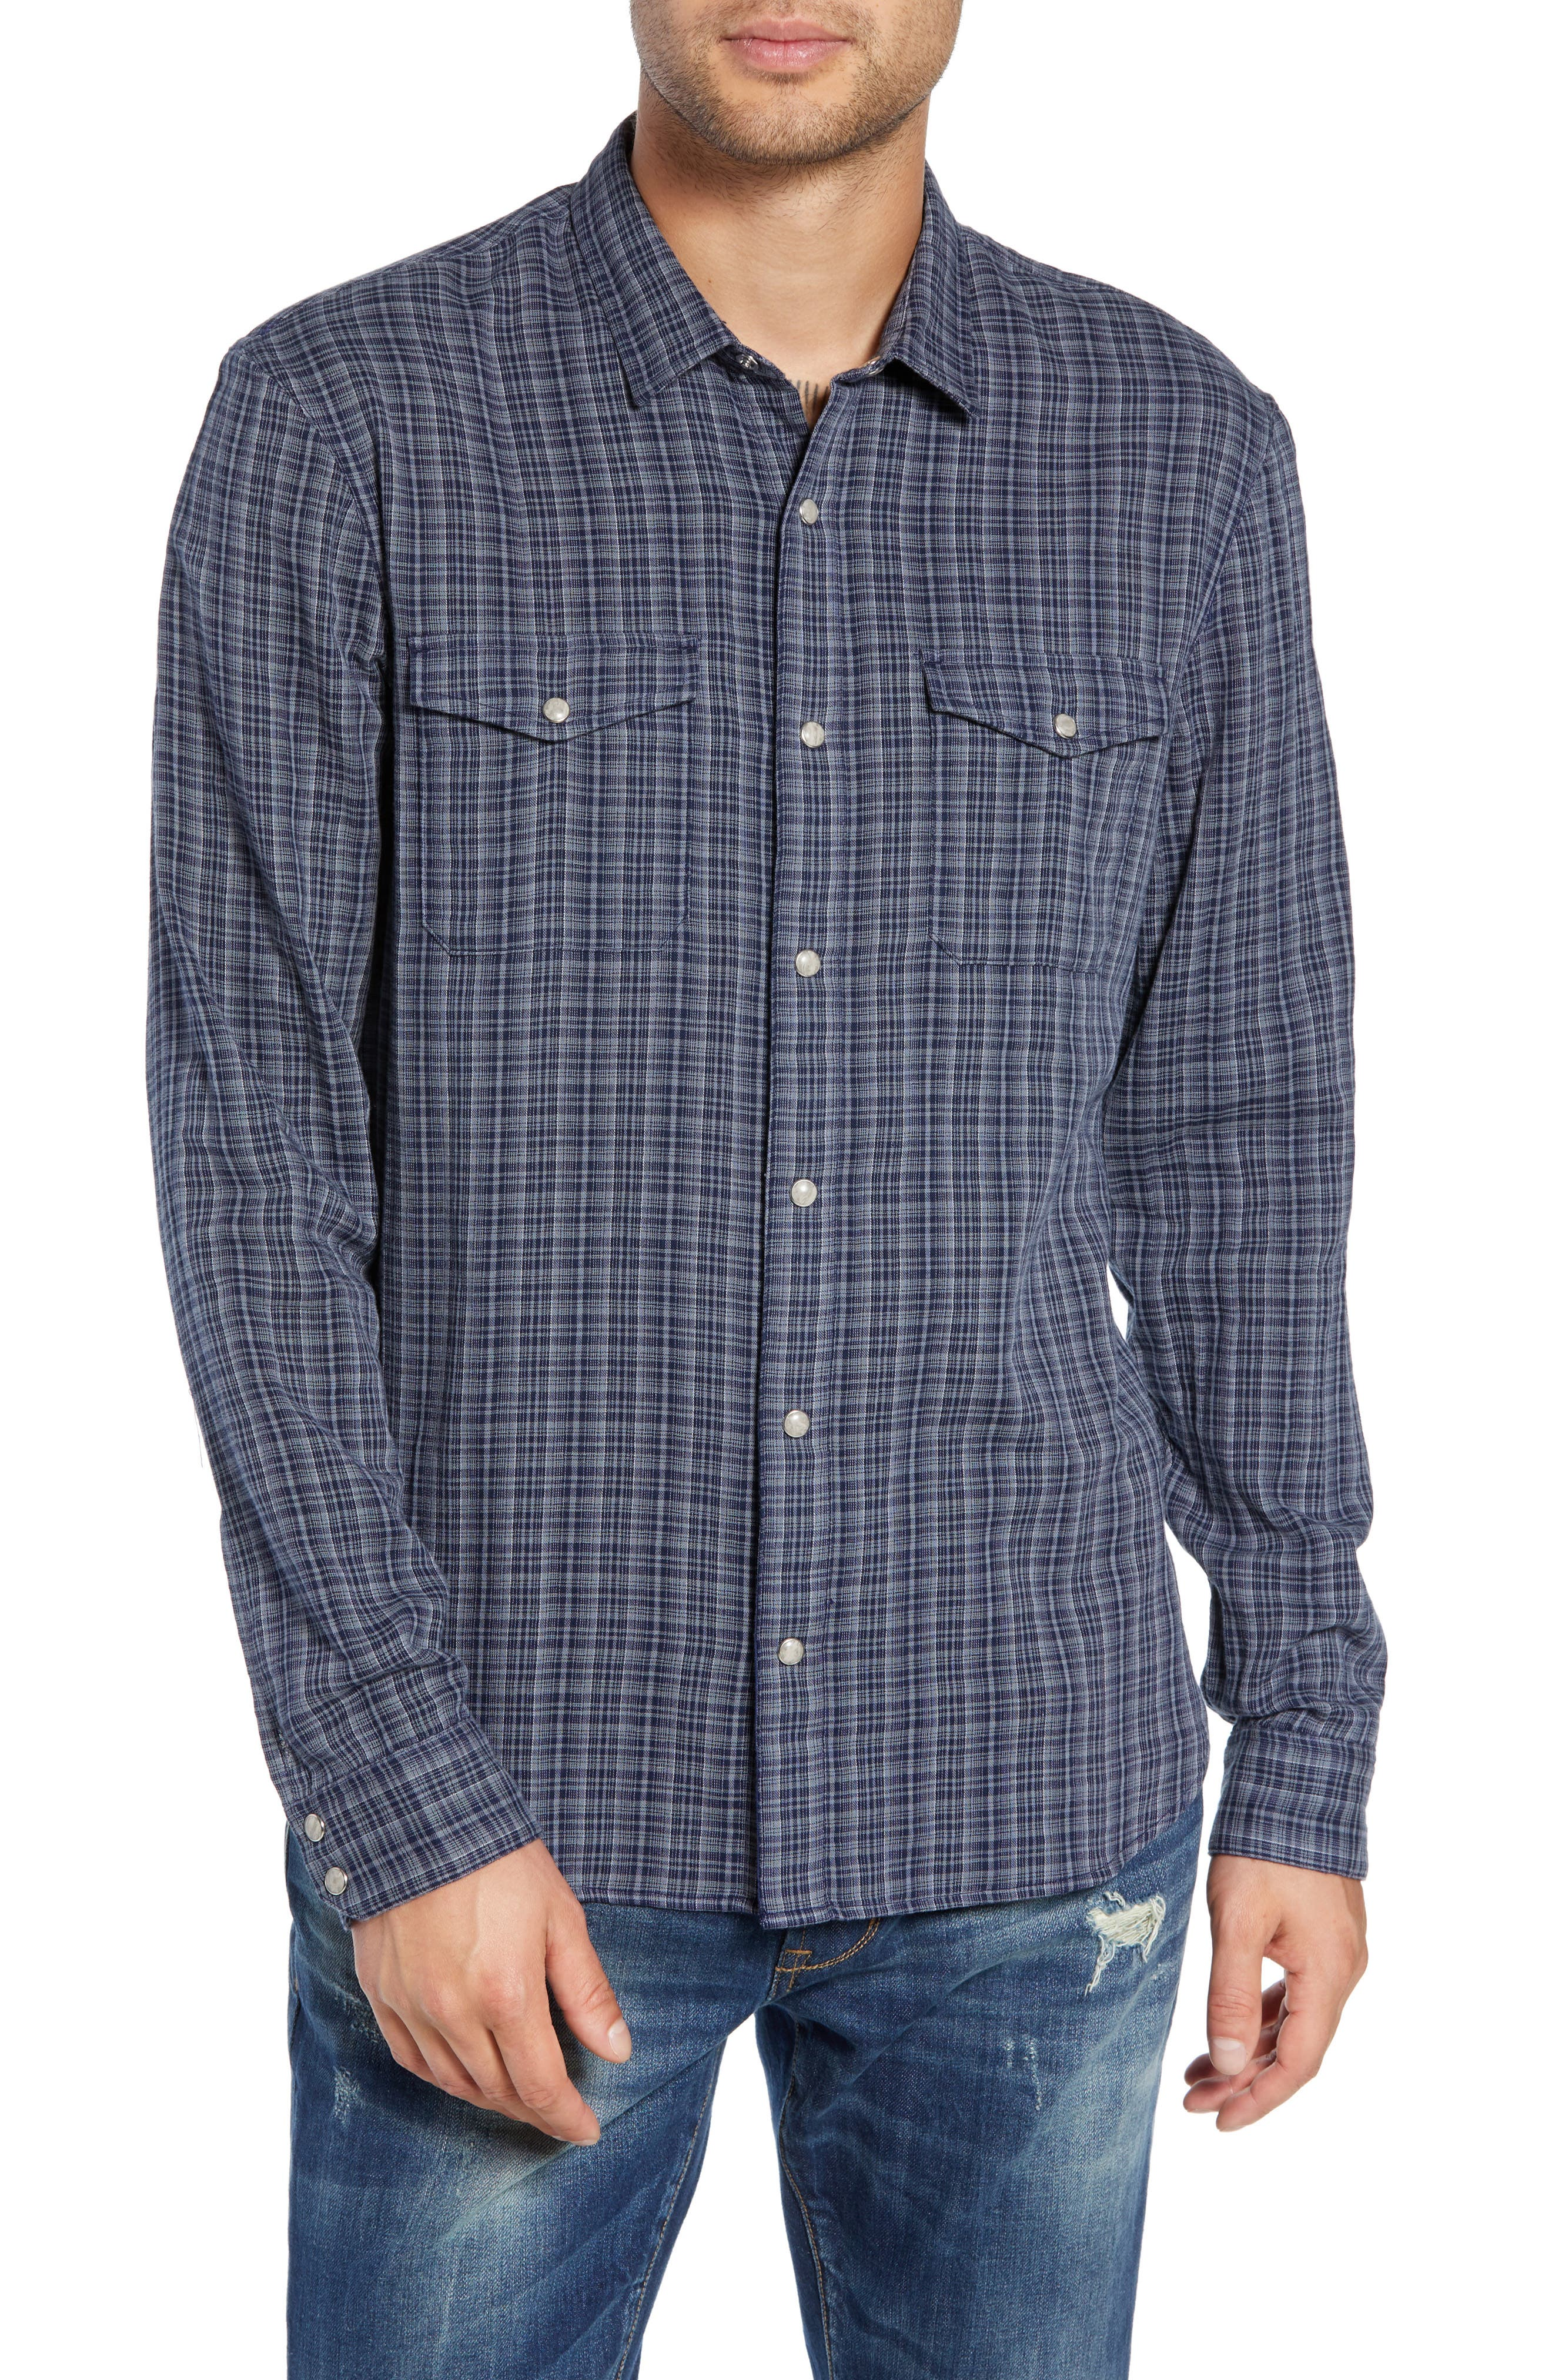 Regular Fit Double Pocket Sport Shirt,                         Main,                         color, NIGHT SKY